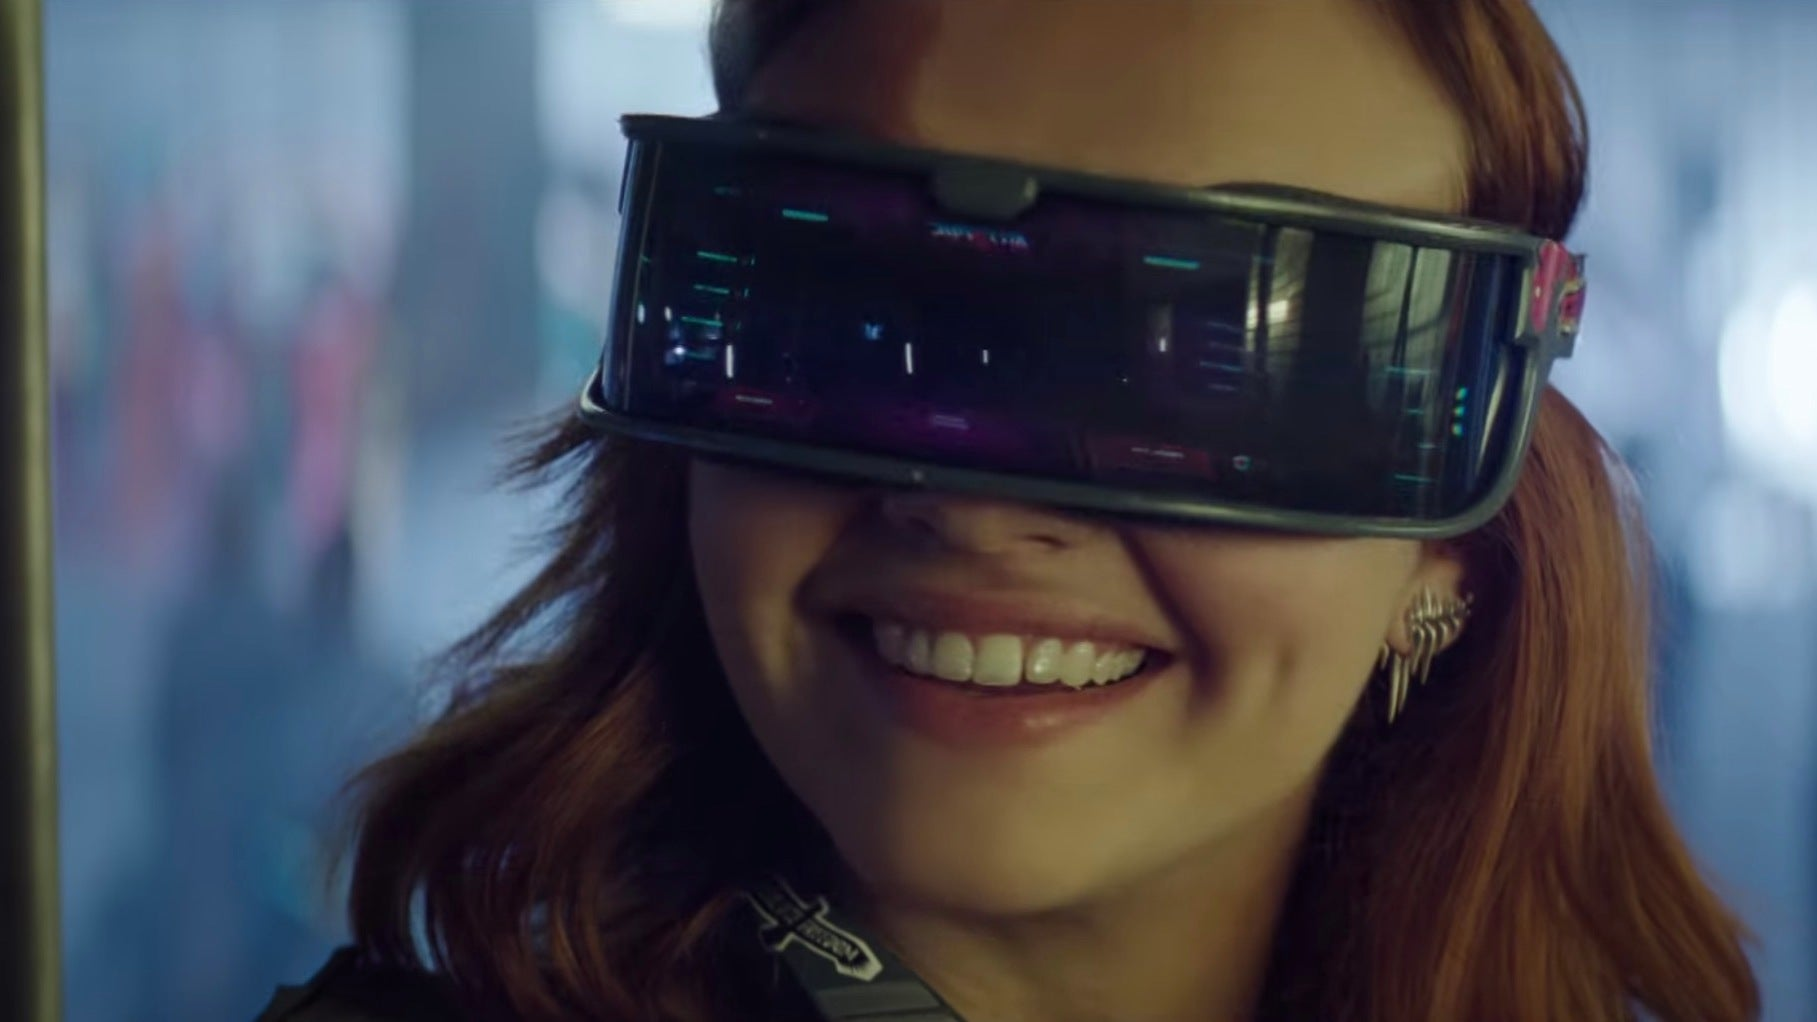 The Latest Ready Player One Trailer Has Way More Reality Than We Were Expecting